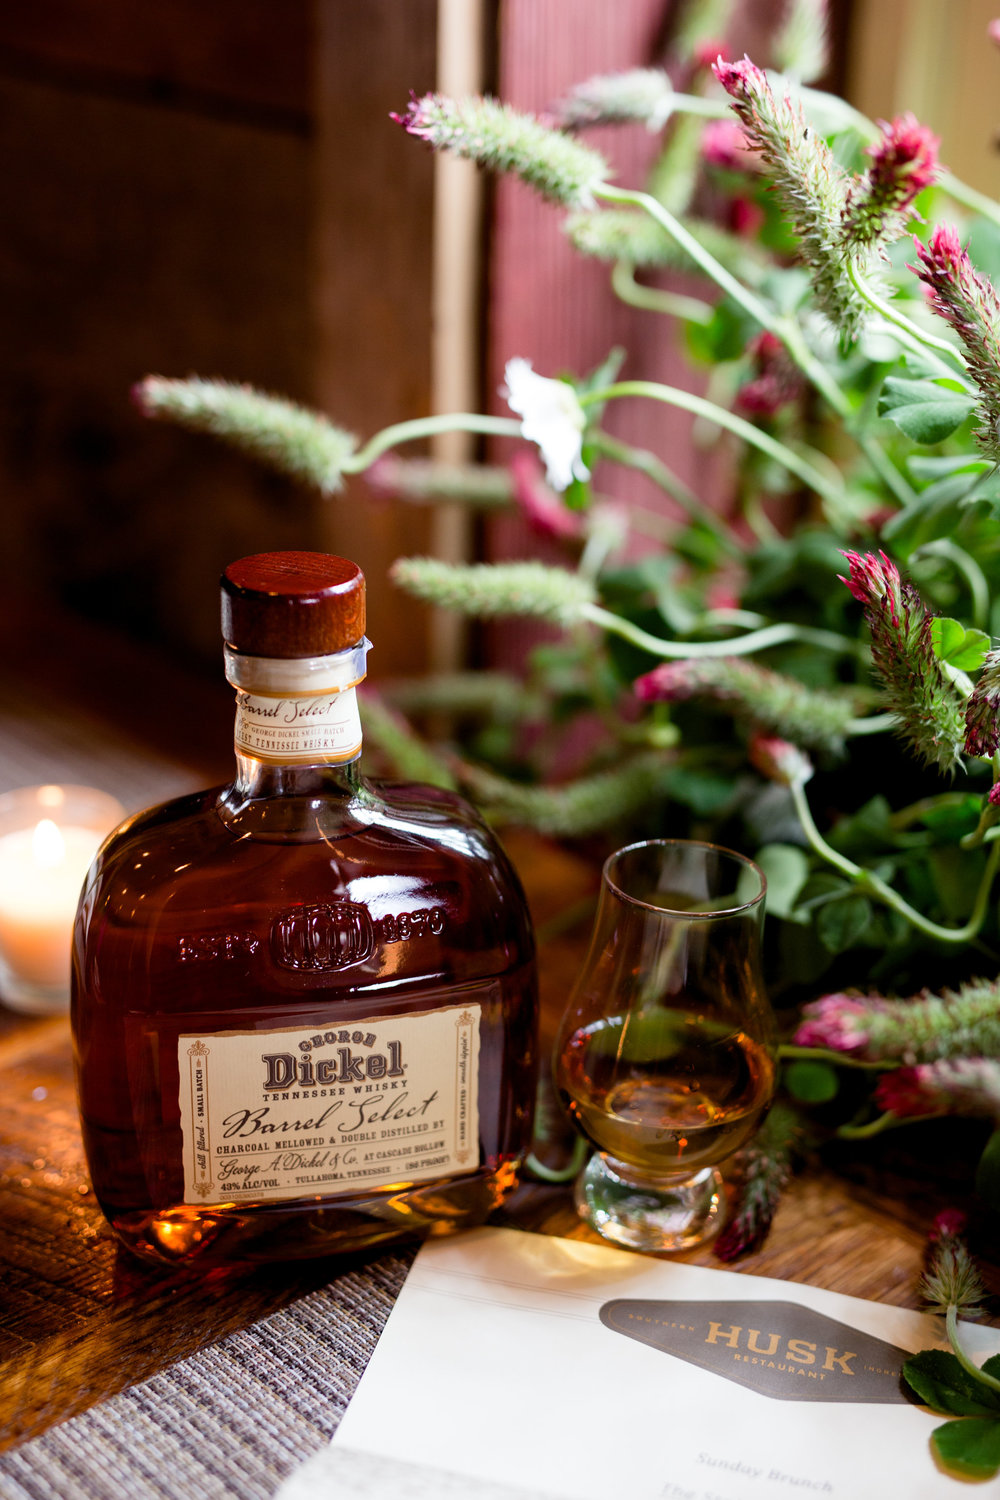 Dickel_Husk_Brewer-36.jpg